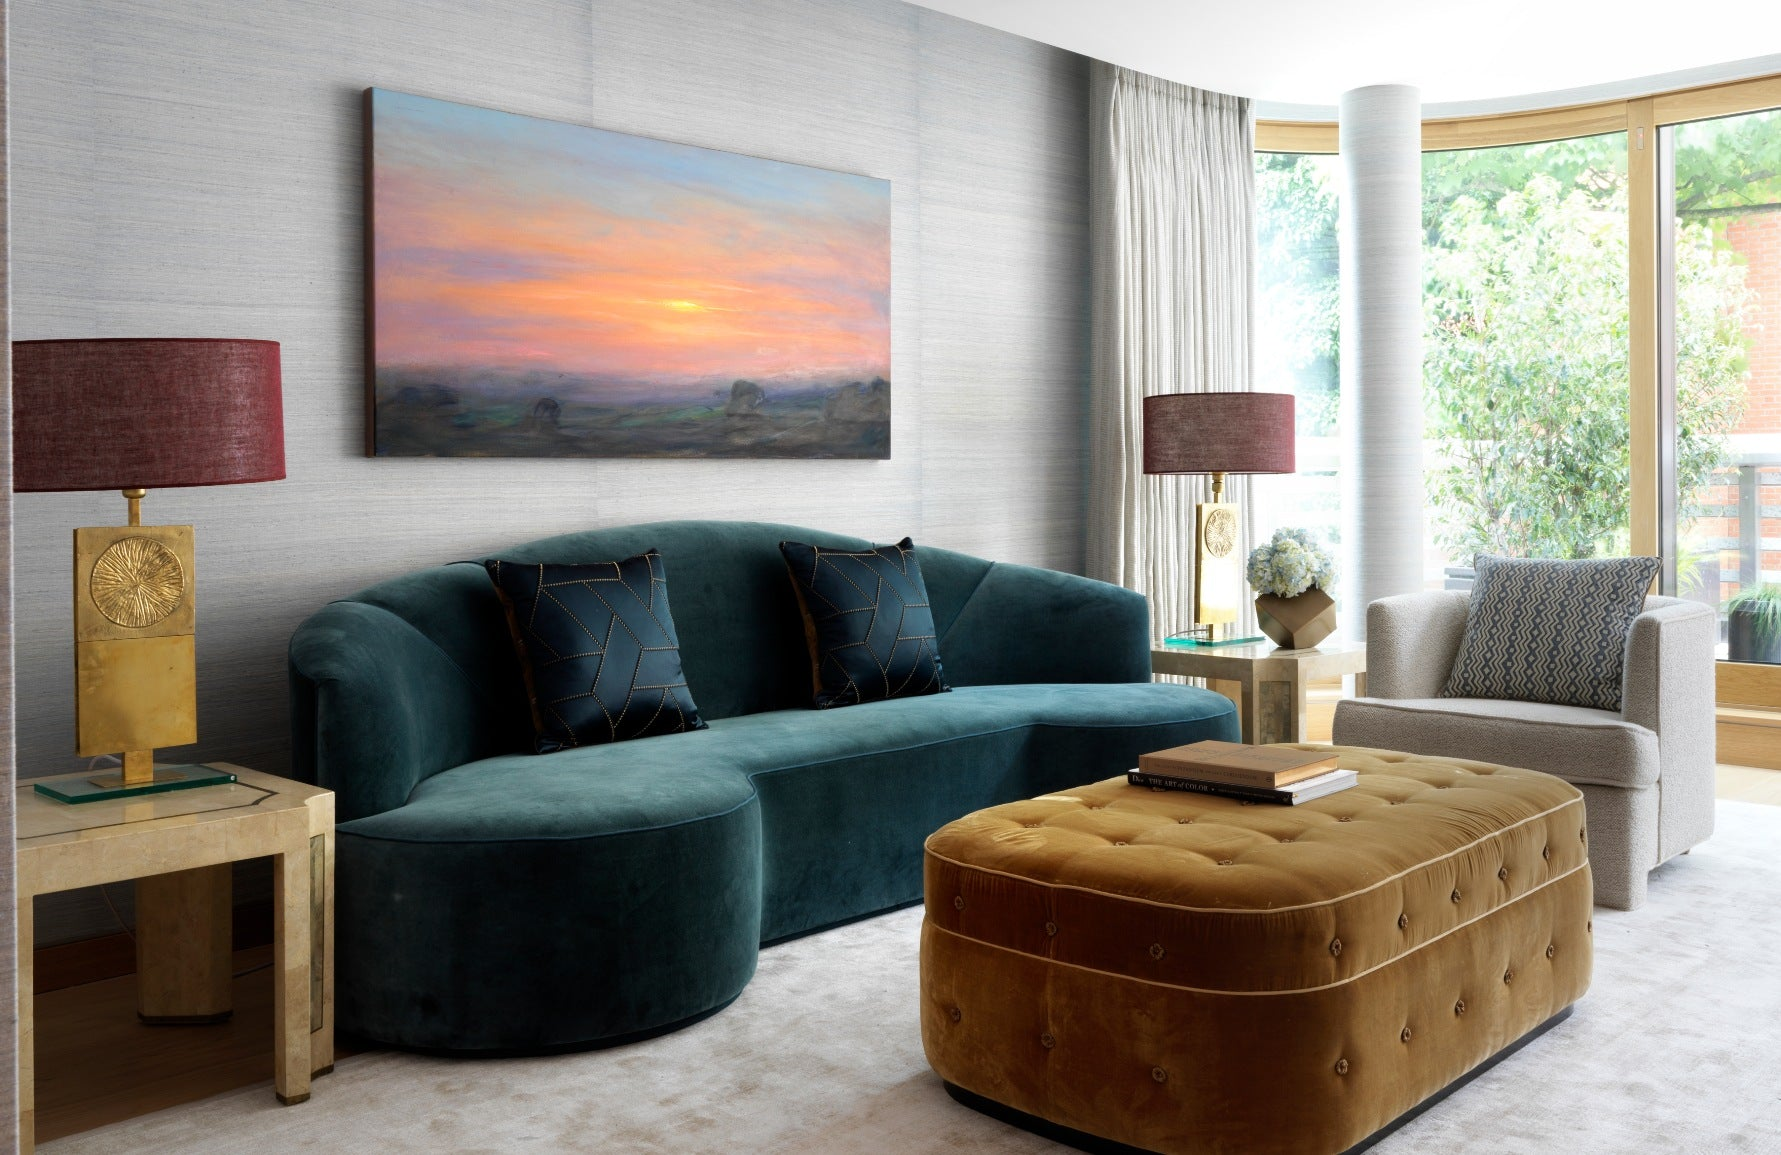 Teal Living room by Natalia Miyar | Read more in the LuxDeco.com Style Guide